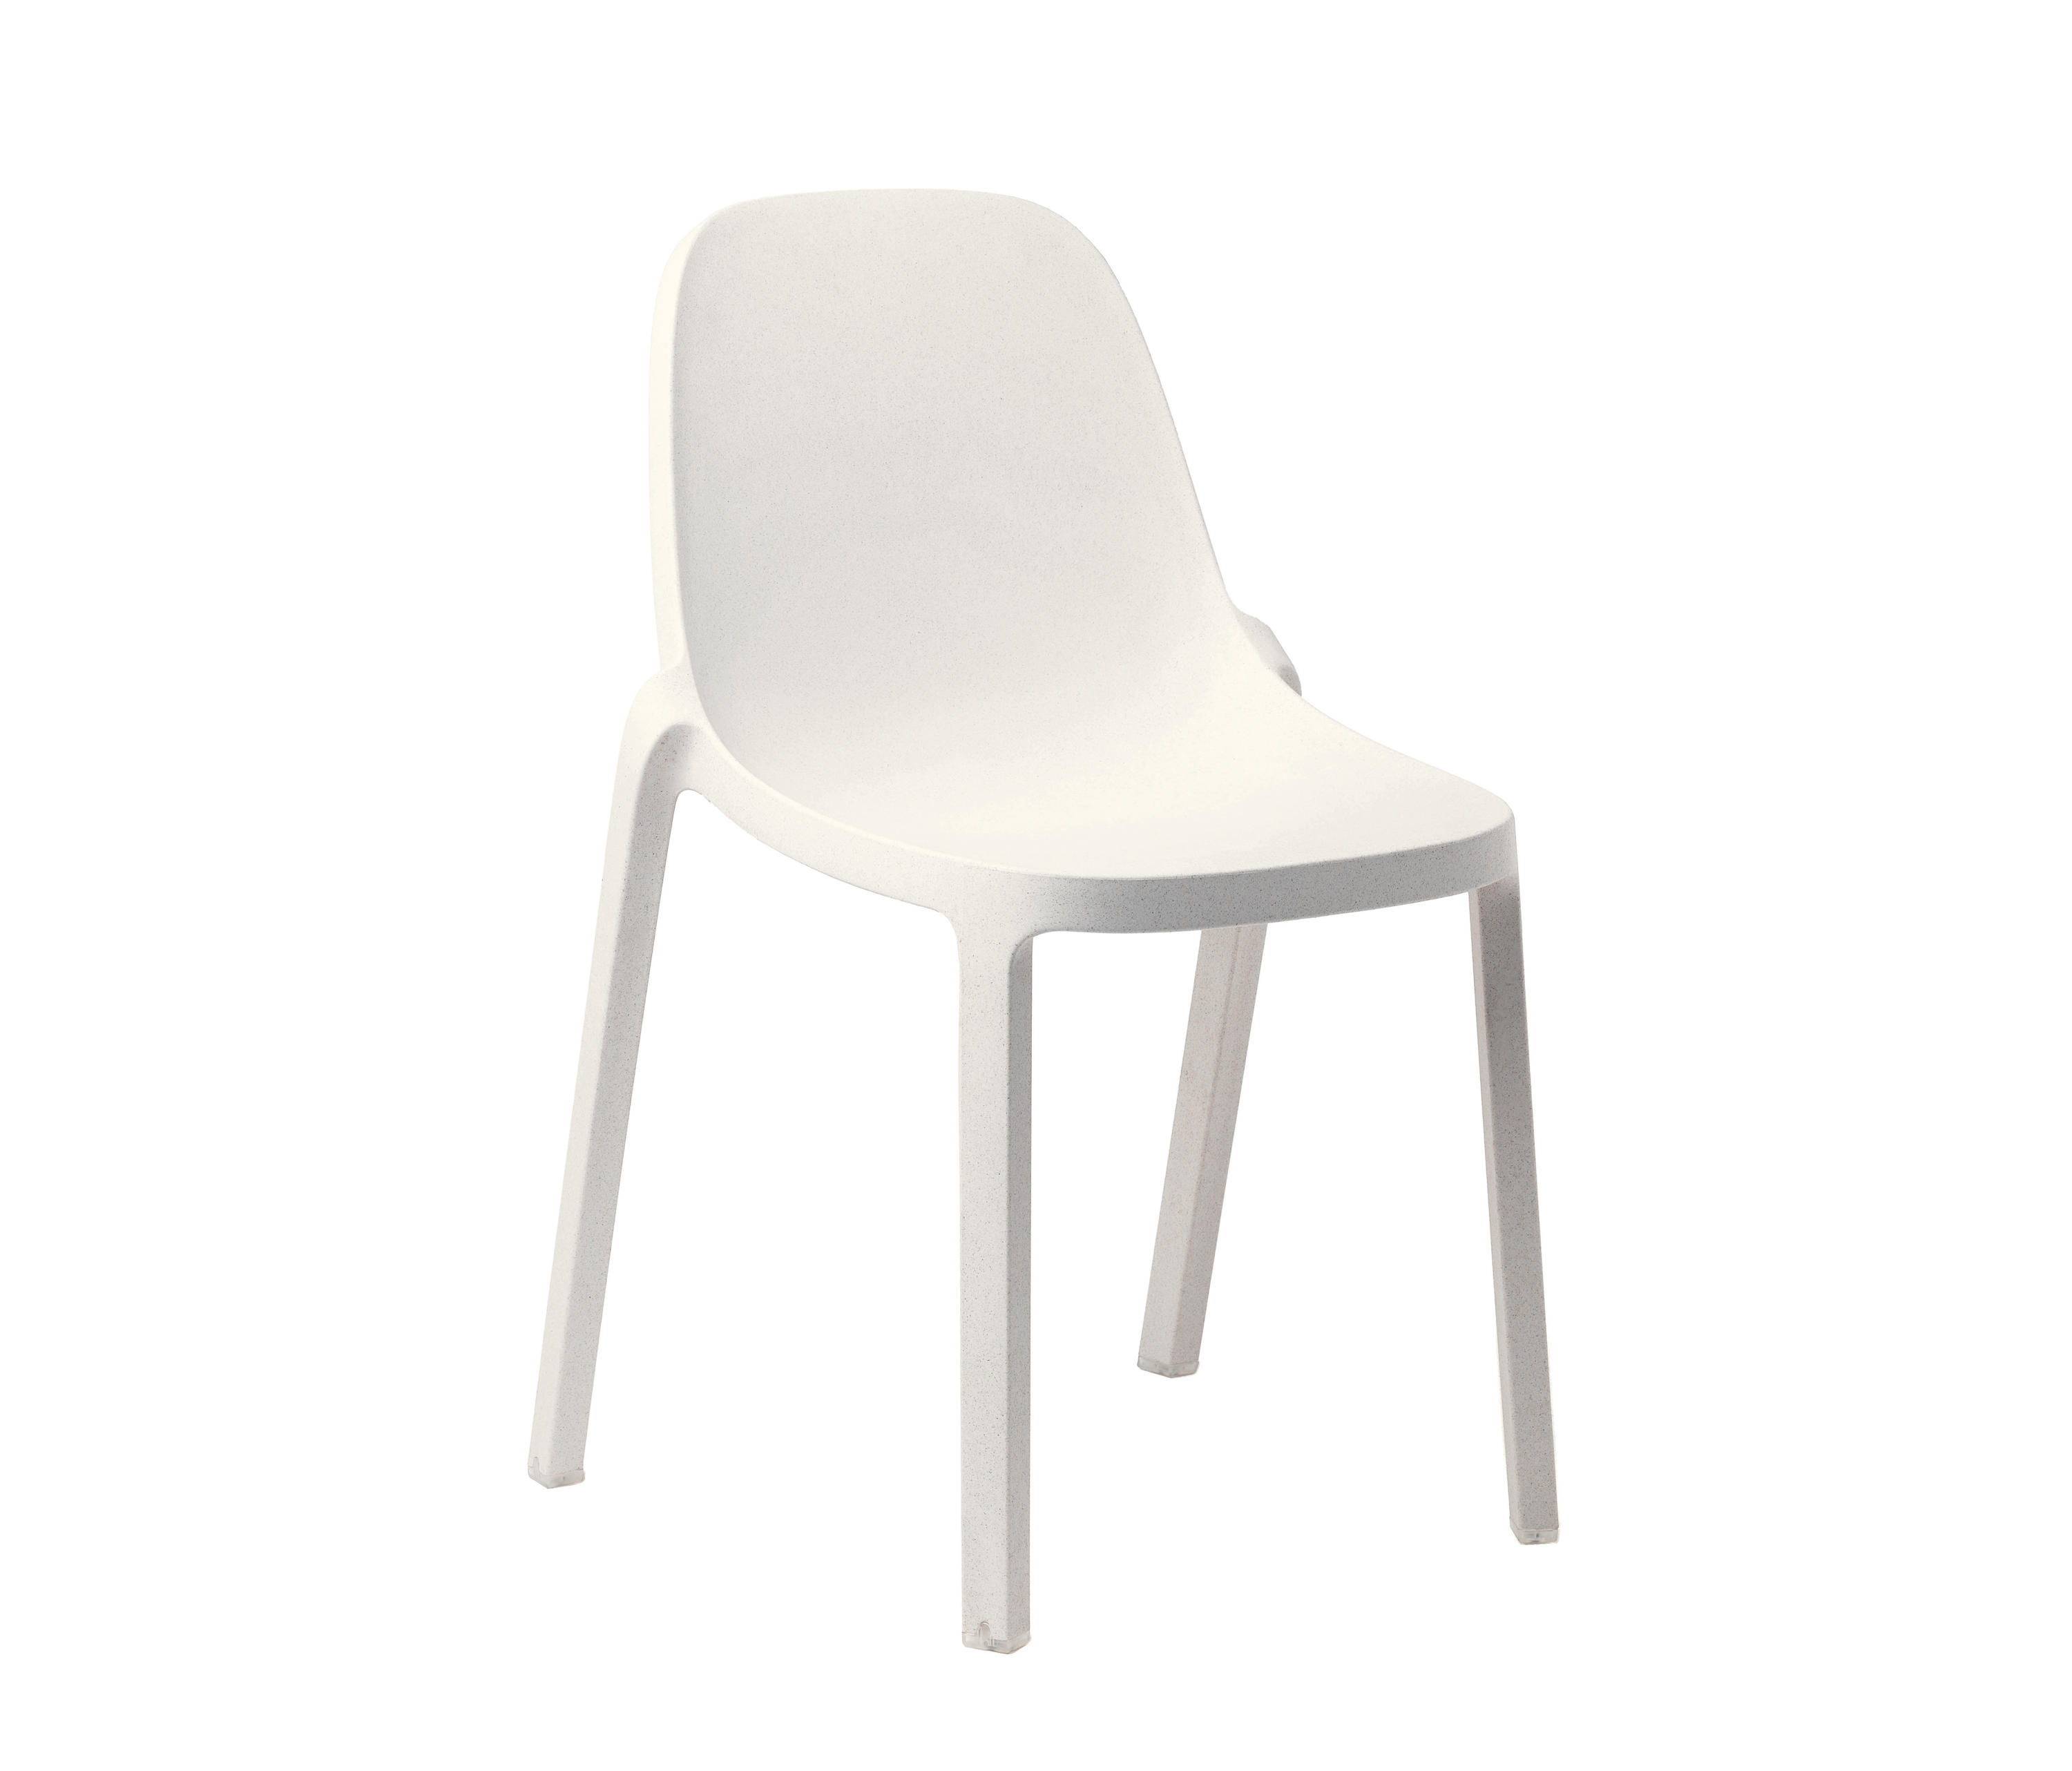 broom chair  restaurant chairs from emeco  architonic -  broom chair by emeco  restaurant chairs